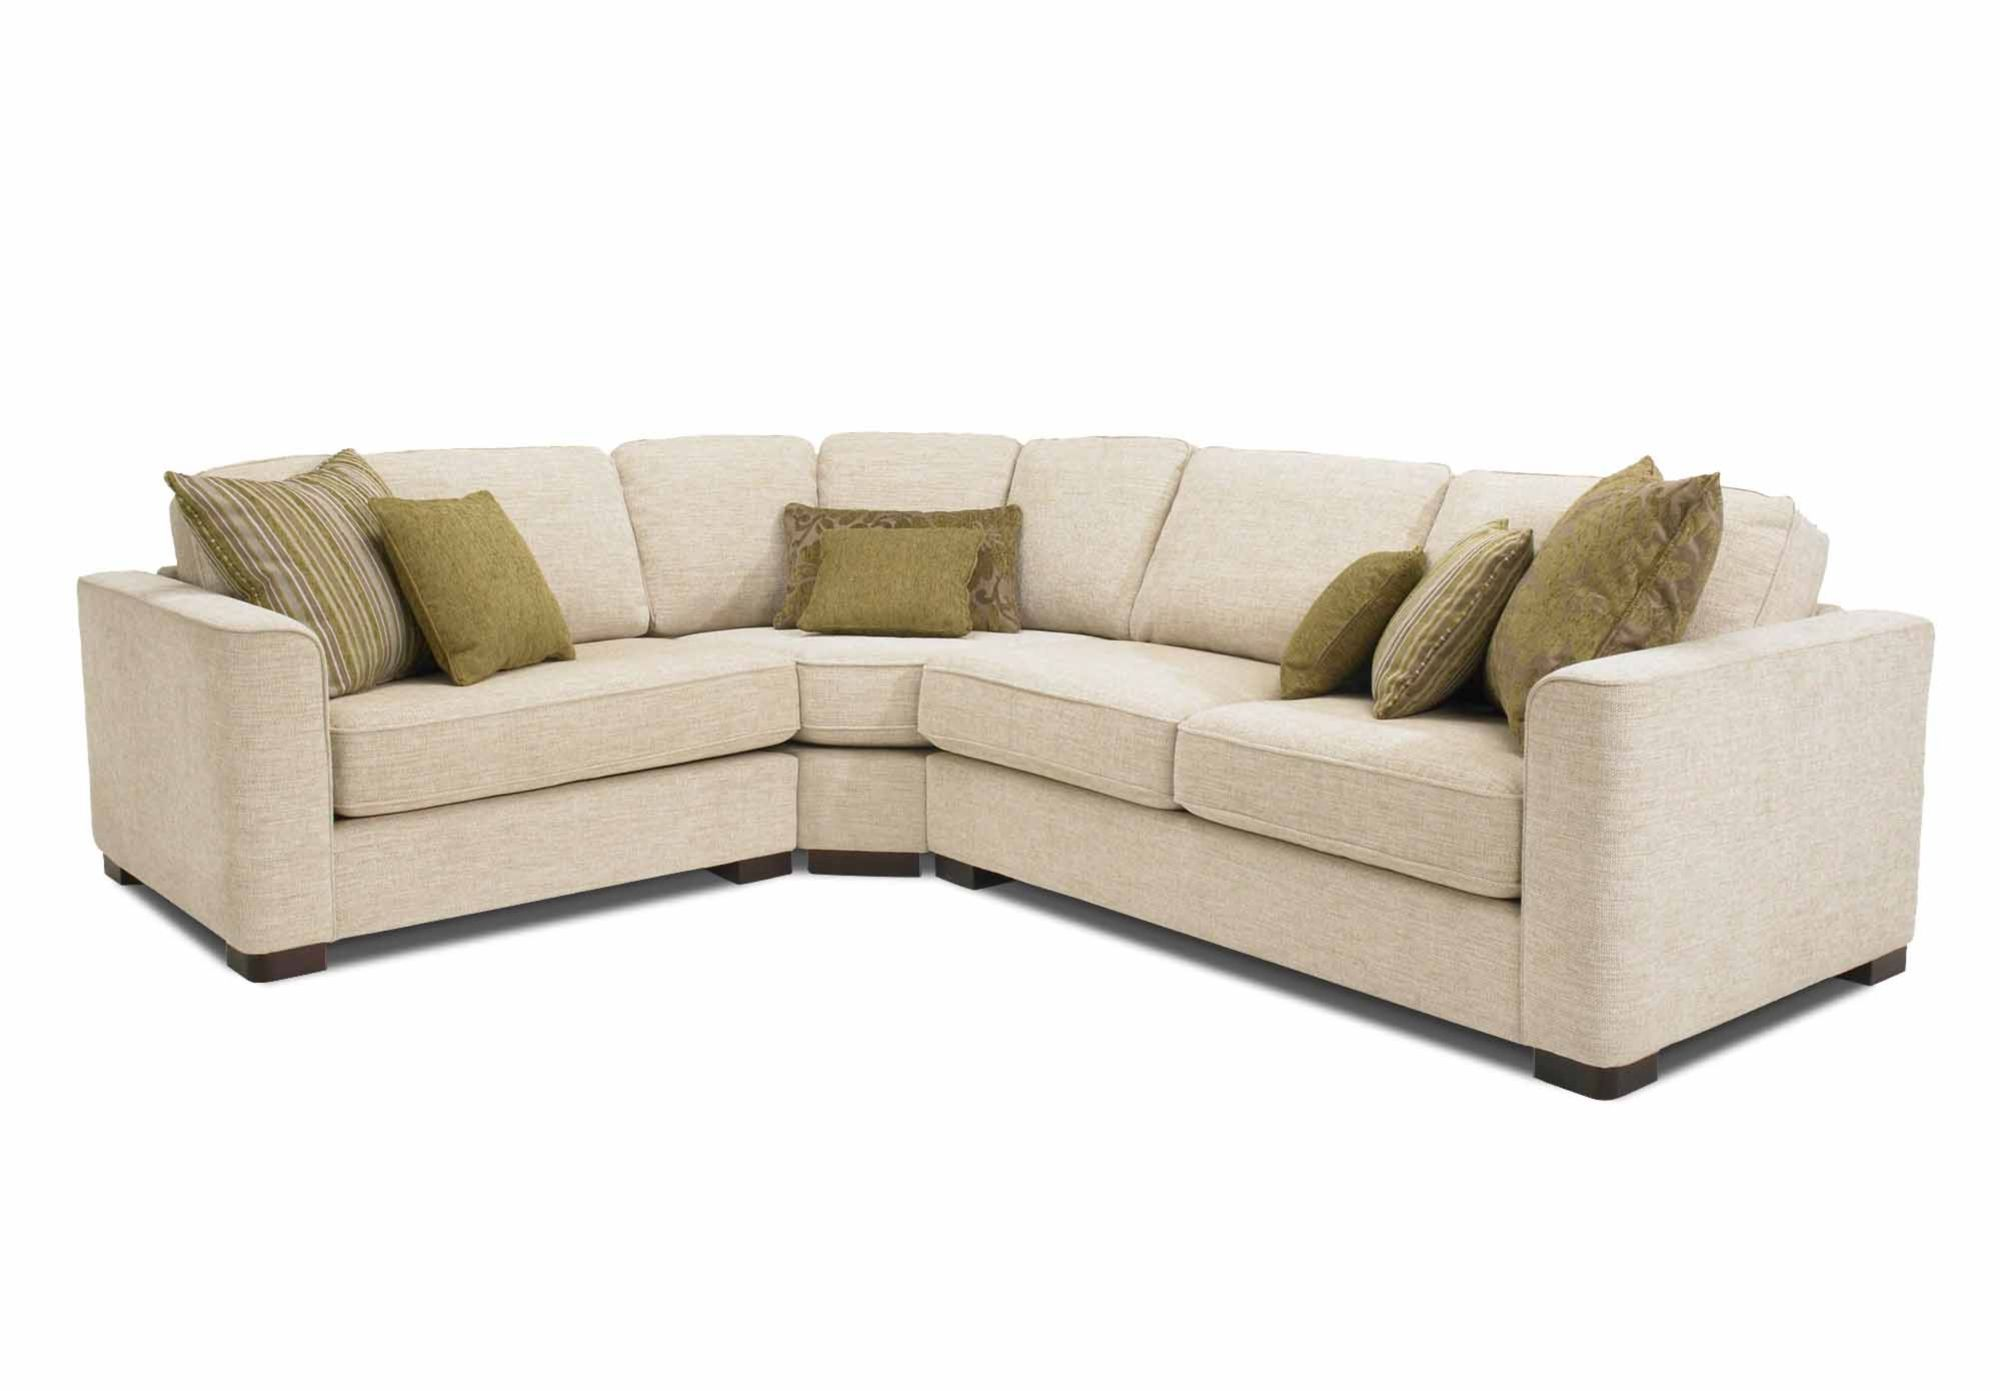 Combi Lhf Eleanor Living Room Furniture Sofas And